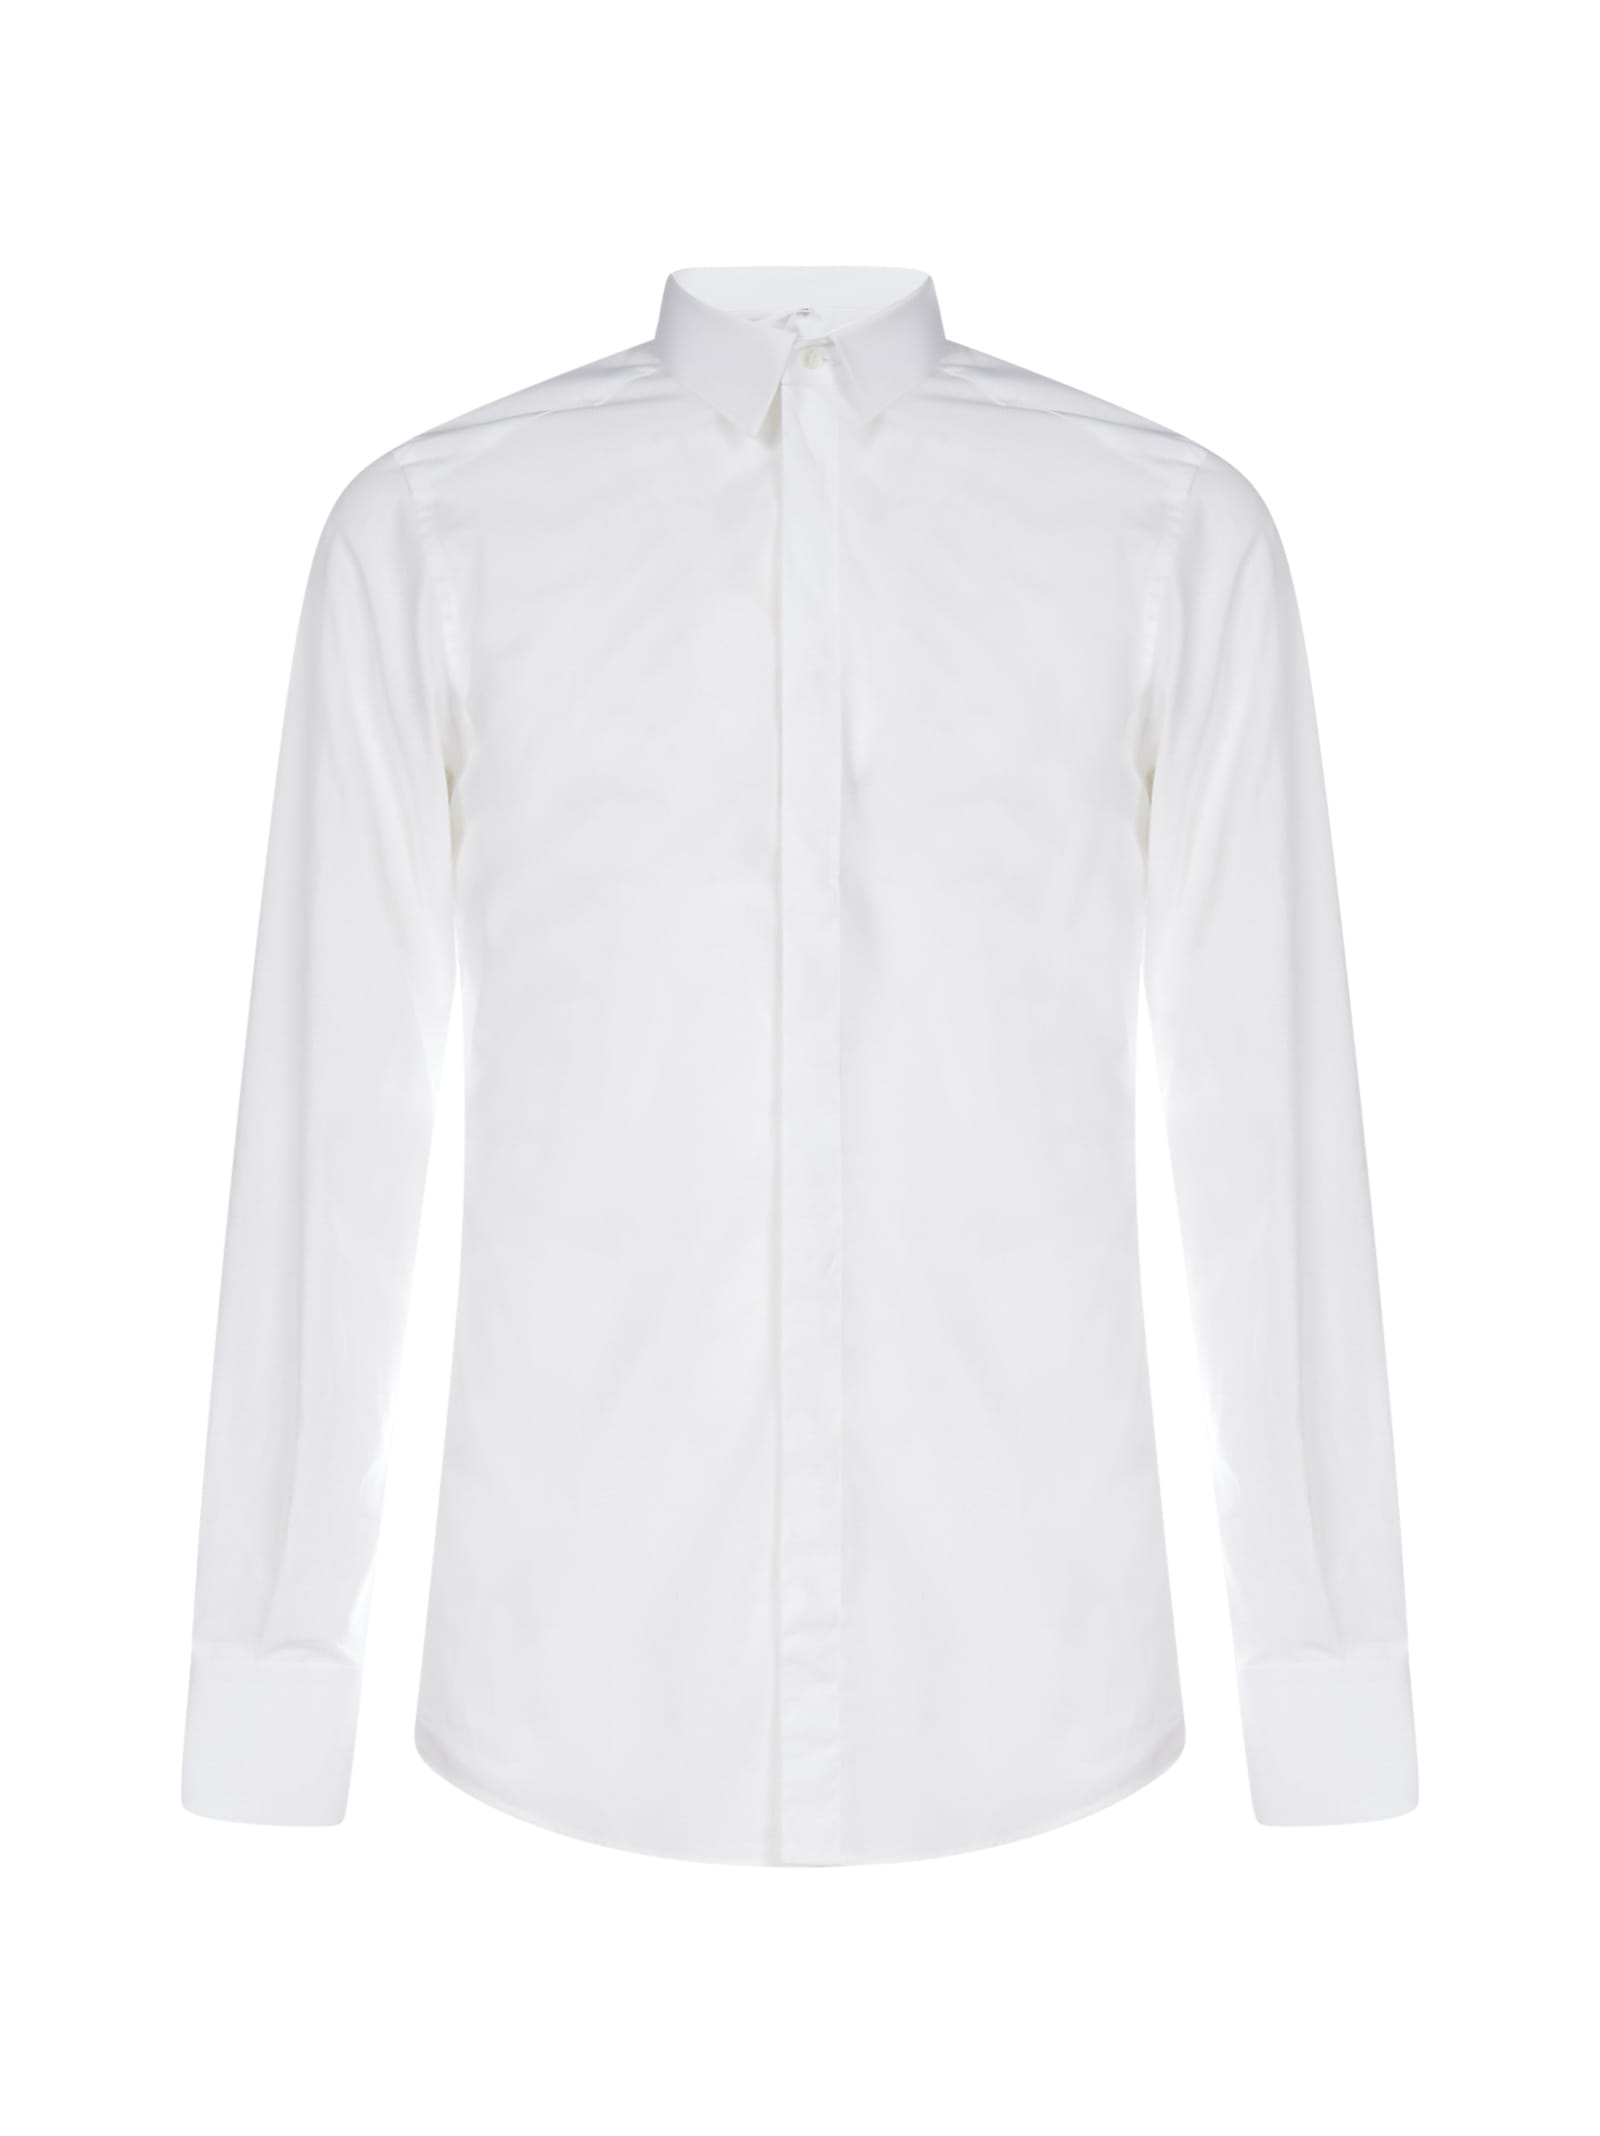 Dolce & Gabbana Bee-crown Embroidery Cotton Shirt